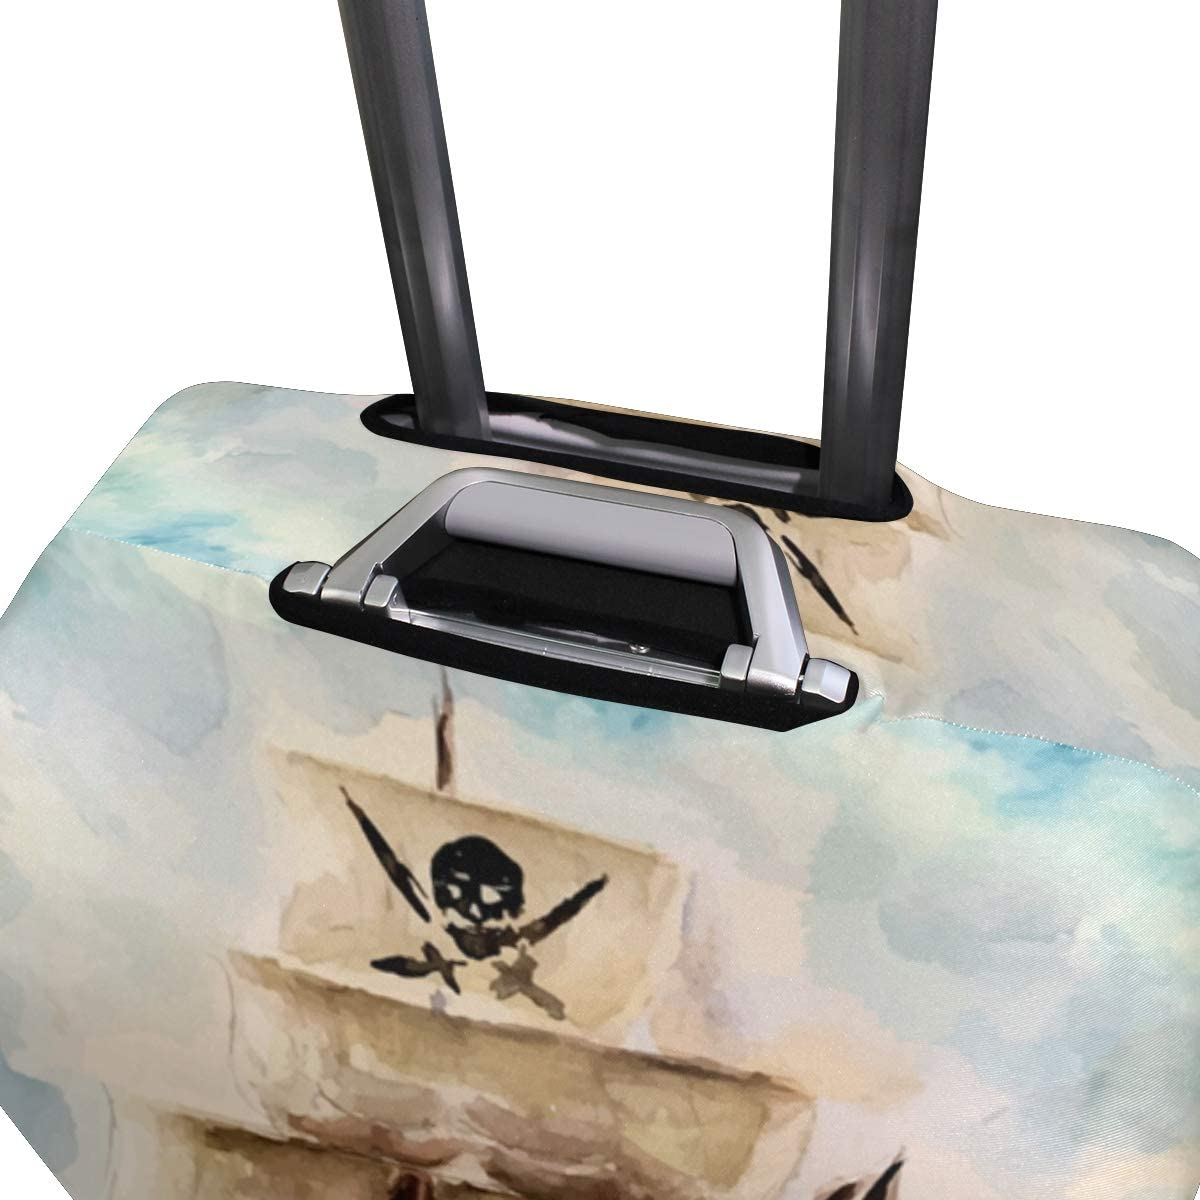 Blue Viper Vintage Watercolor Pirate Luggage Protective Cover Suitcase Protector Fits 29-32 Inch Luggage